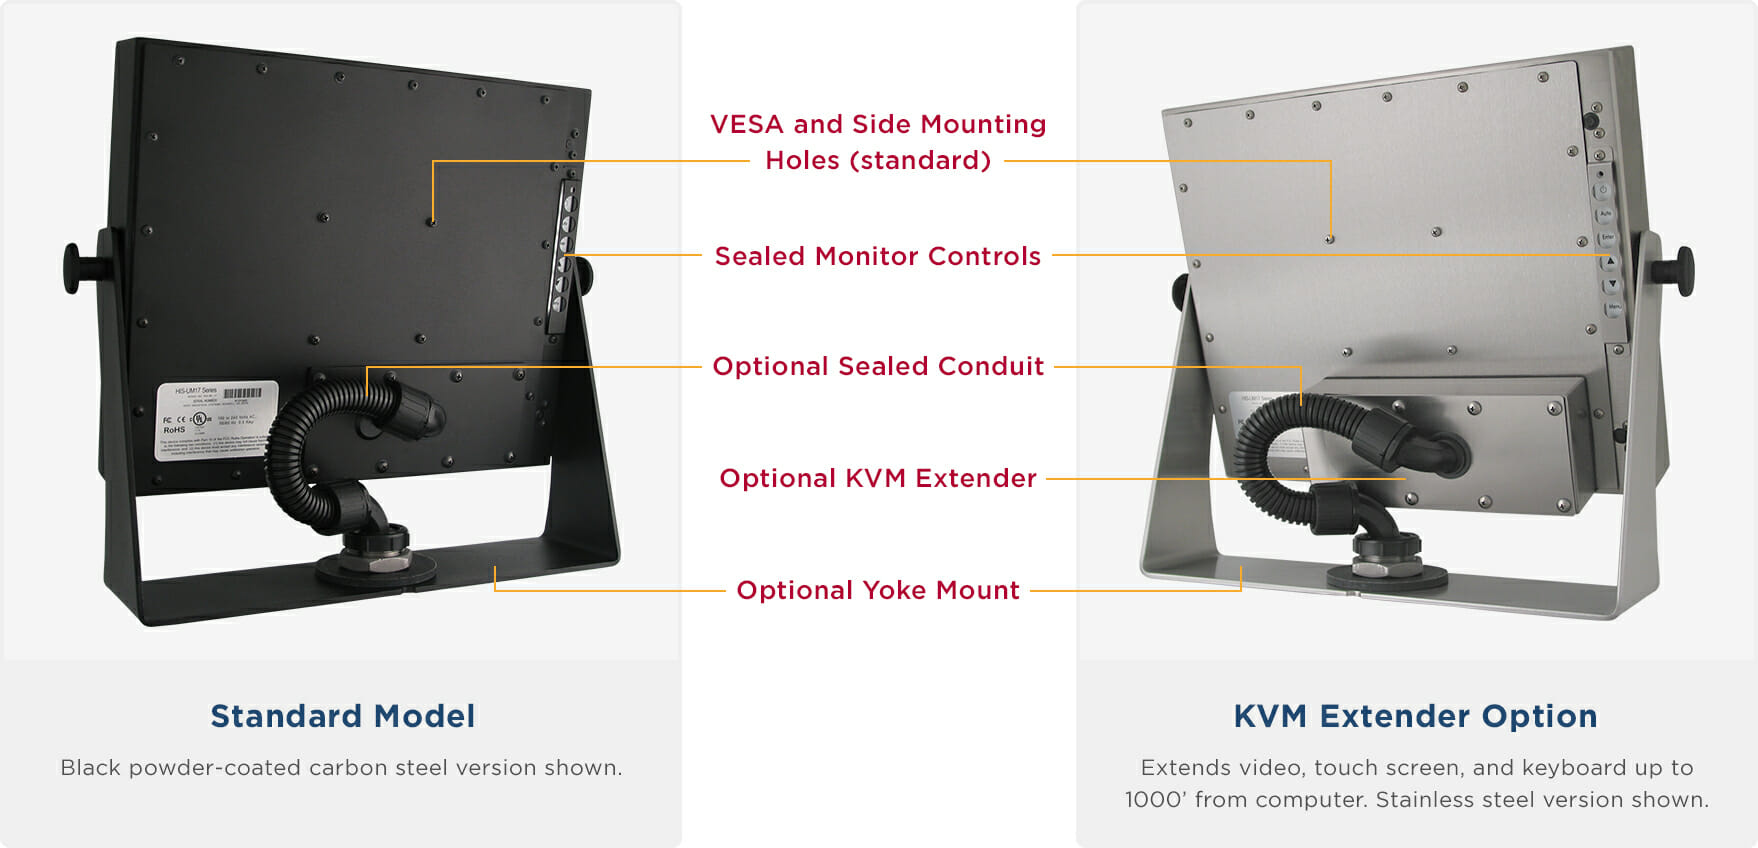 "Rear views of NEMA 4/4X Rated 17"" Universal Mount Monitors showing Industrial Enclosure features and options"